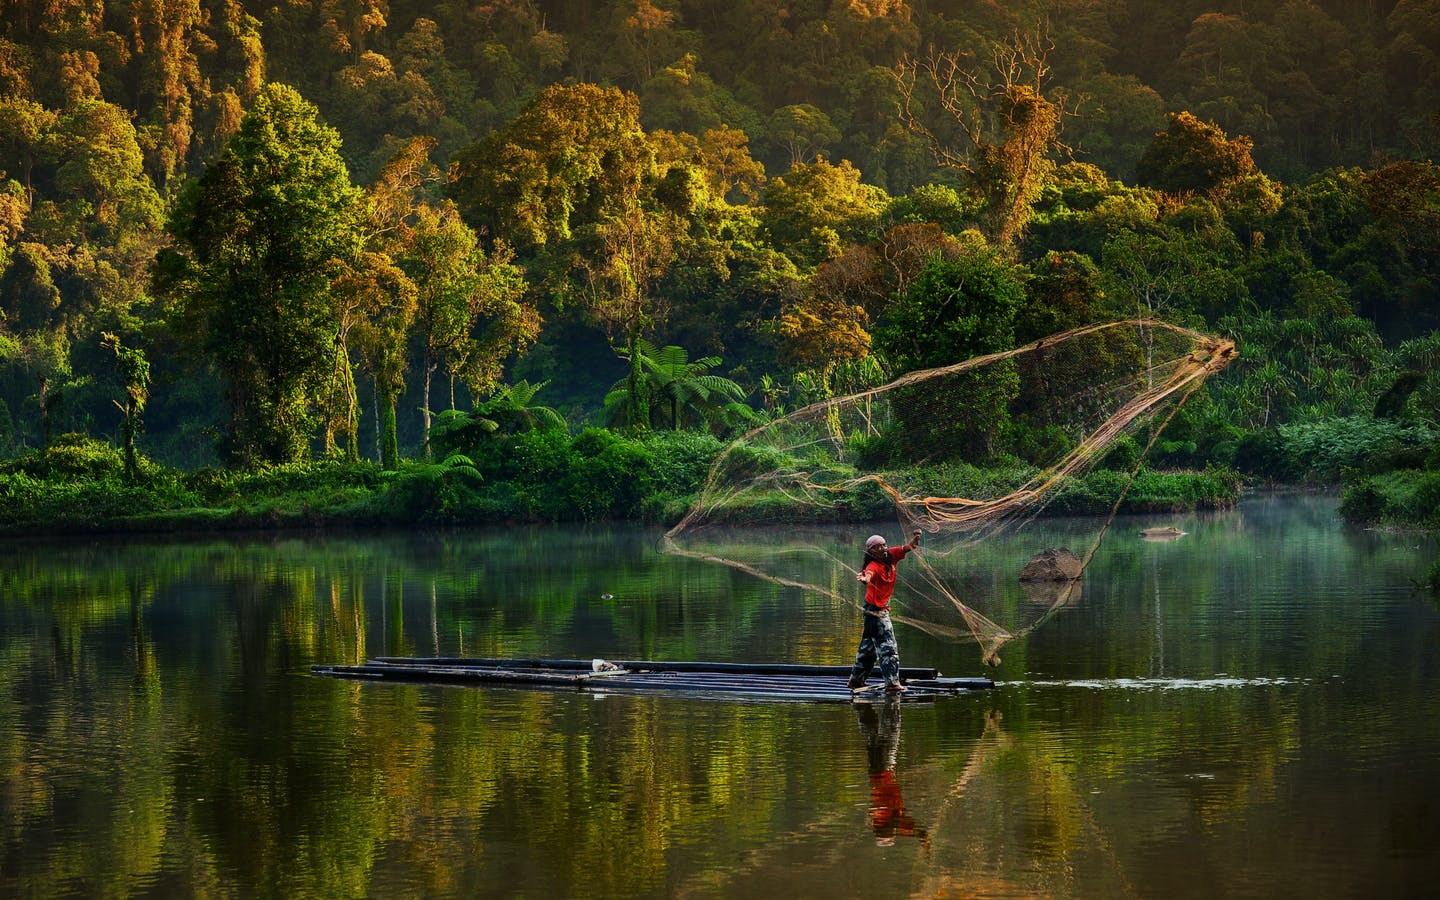 A man in West Java, Indonesia fishing in the lake using a traditional net.